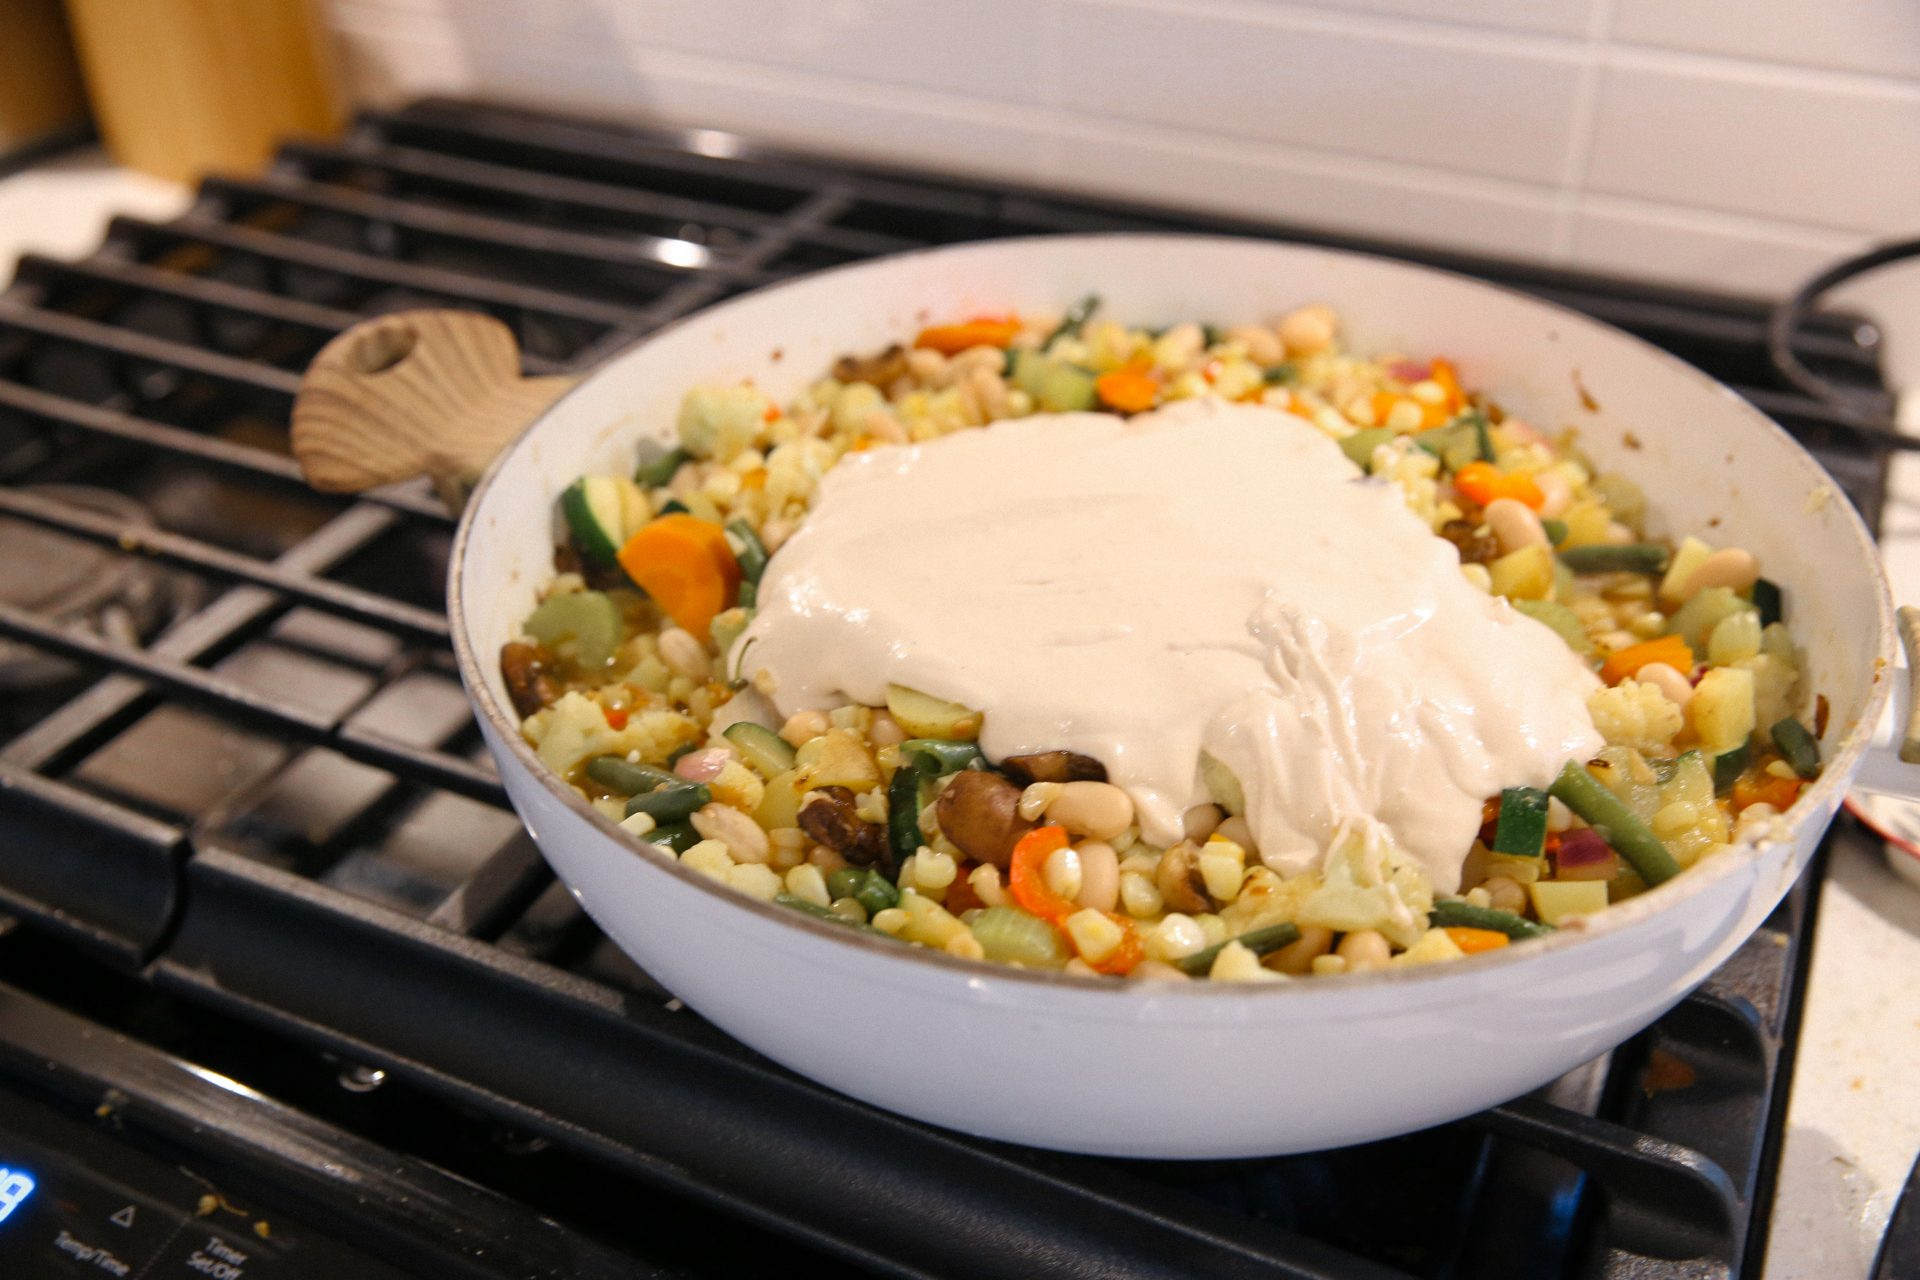 Sauteed vegetables with cashew cream on top